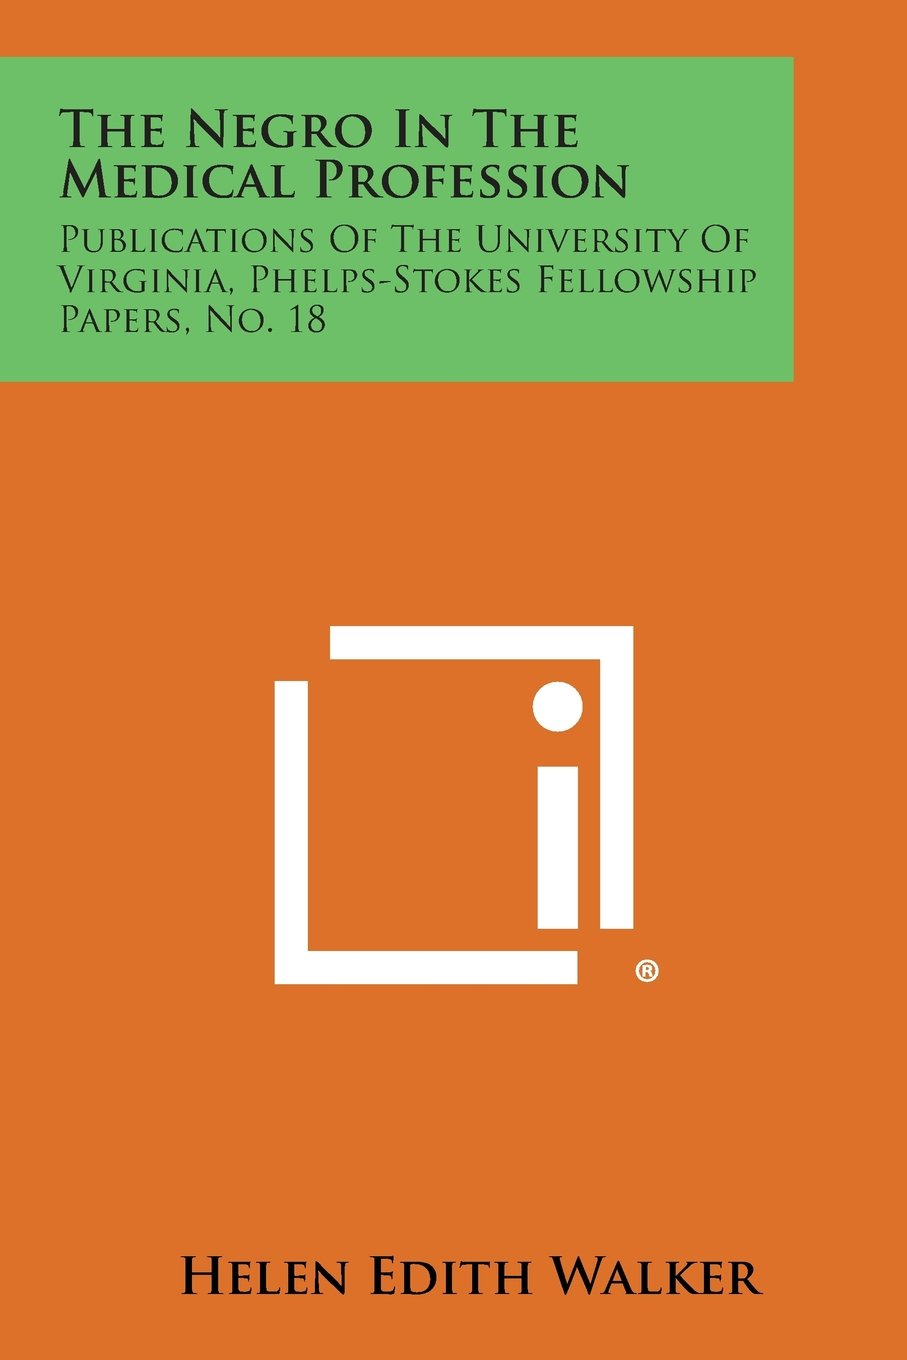 Download The Negro in the Medical Profession: Publications of the University of Virginia, Phelps-Stokes Fellowship Papers, No. 18 pdf epub